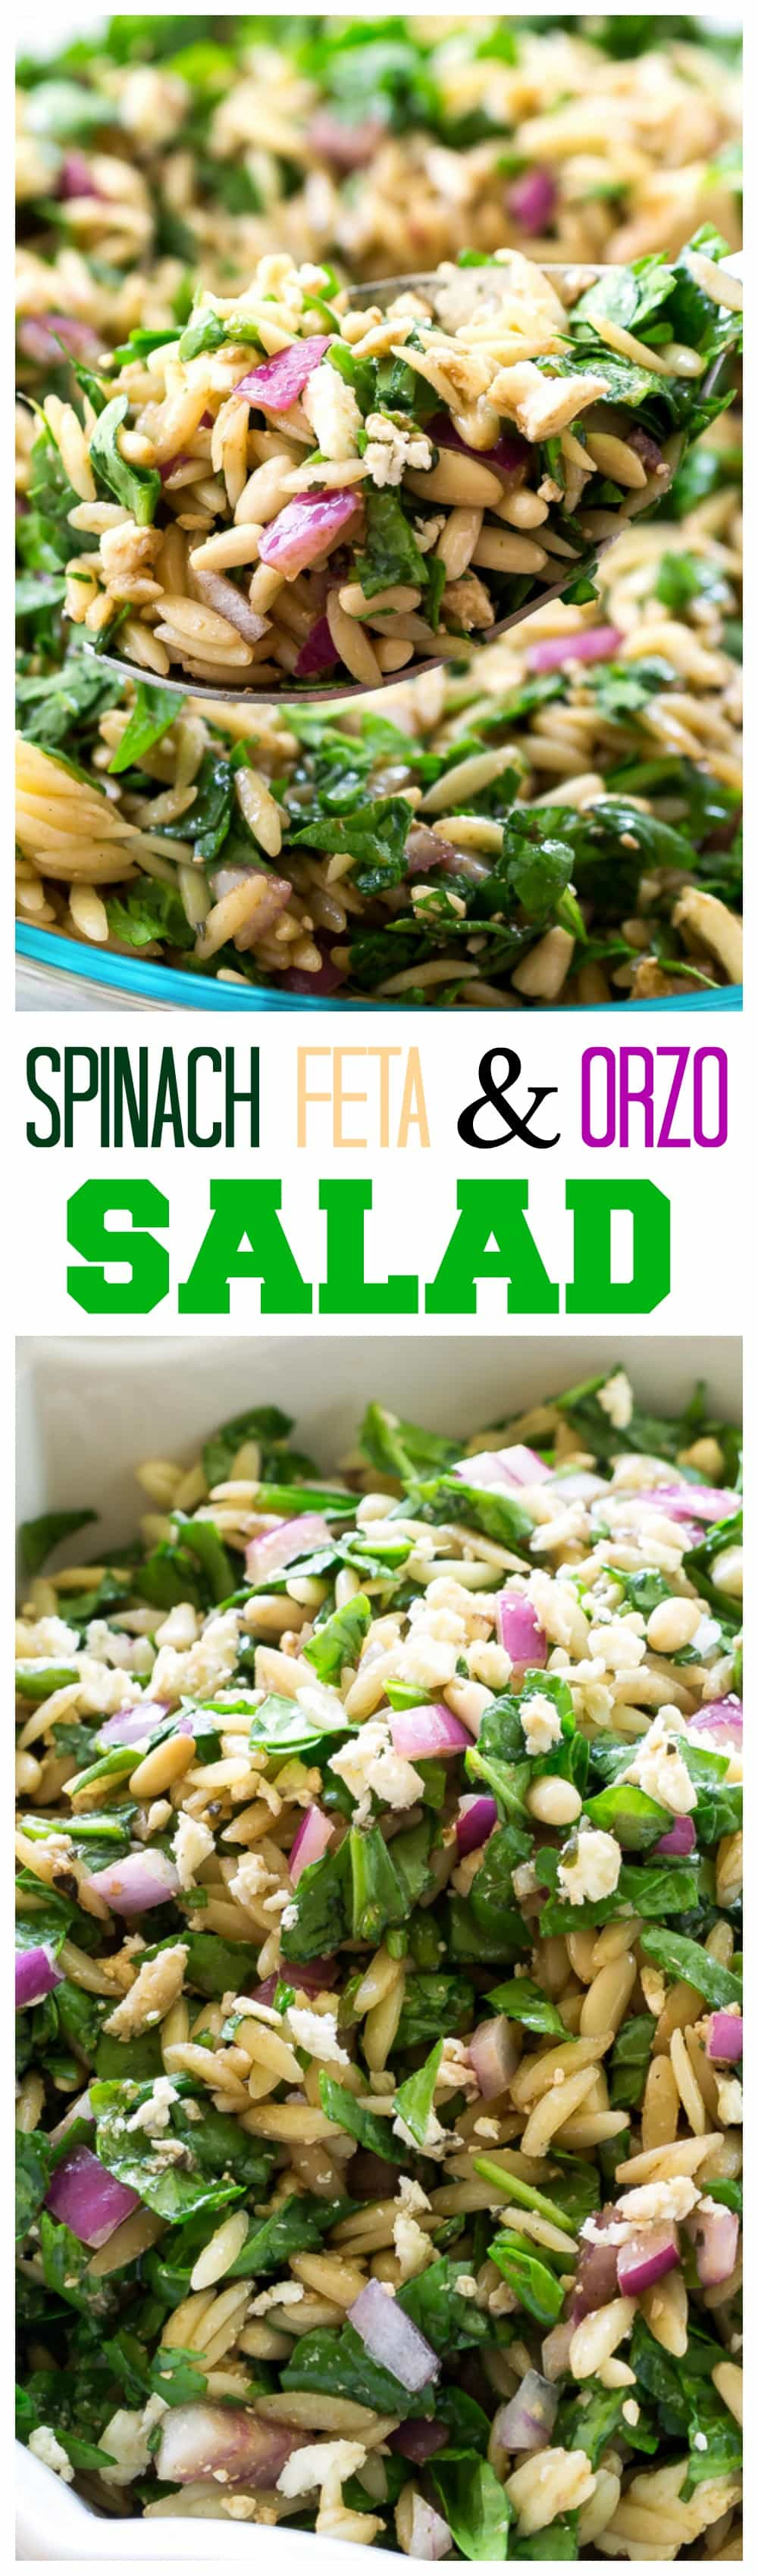 Spinach, Feta, and Orzo Salad - tossed in a balsamic vinaigrette. #spinach #feta #orzo #salad #recipe